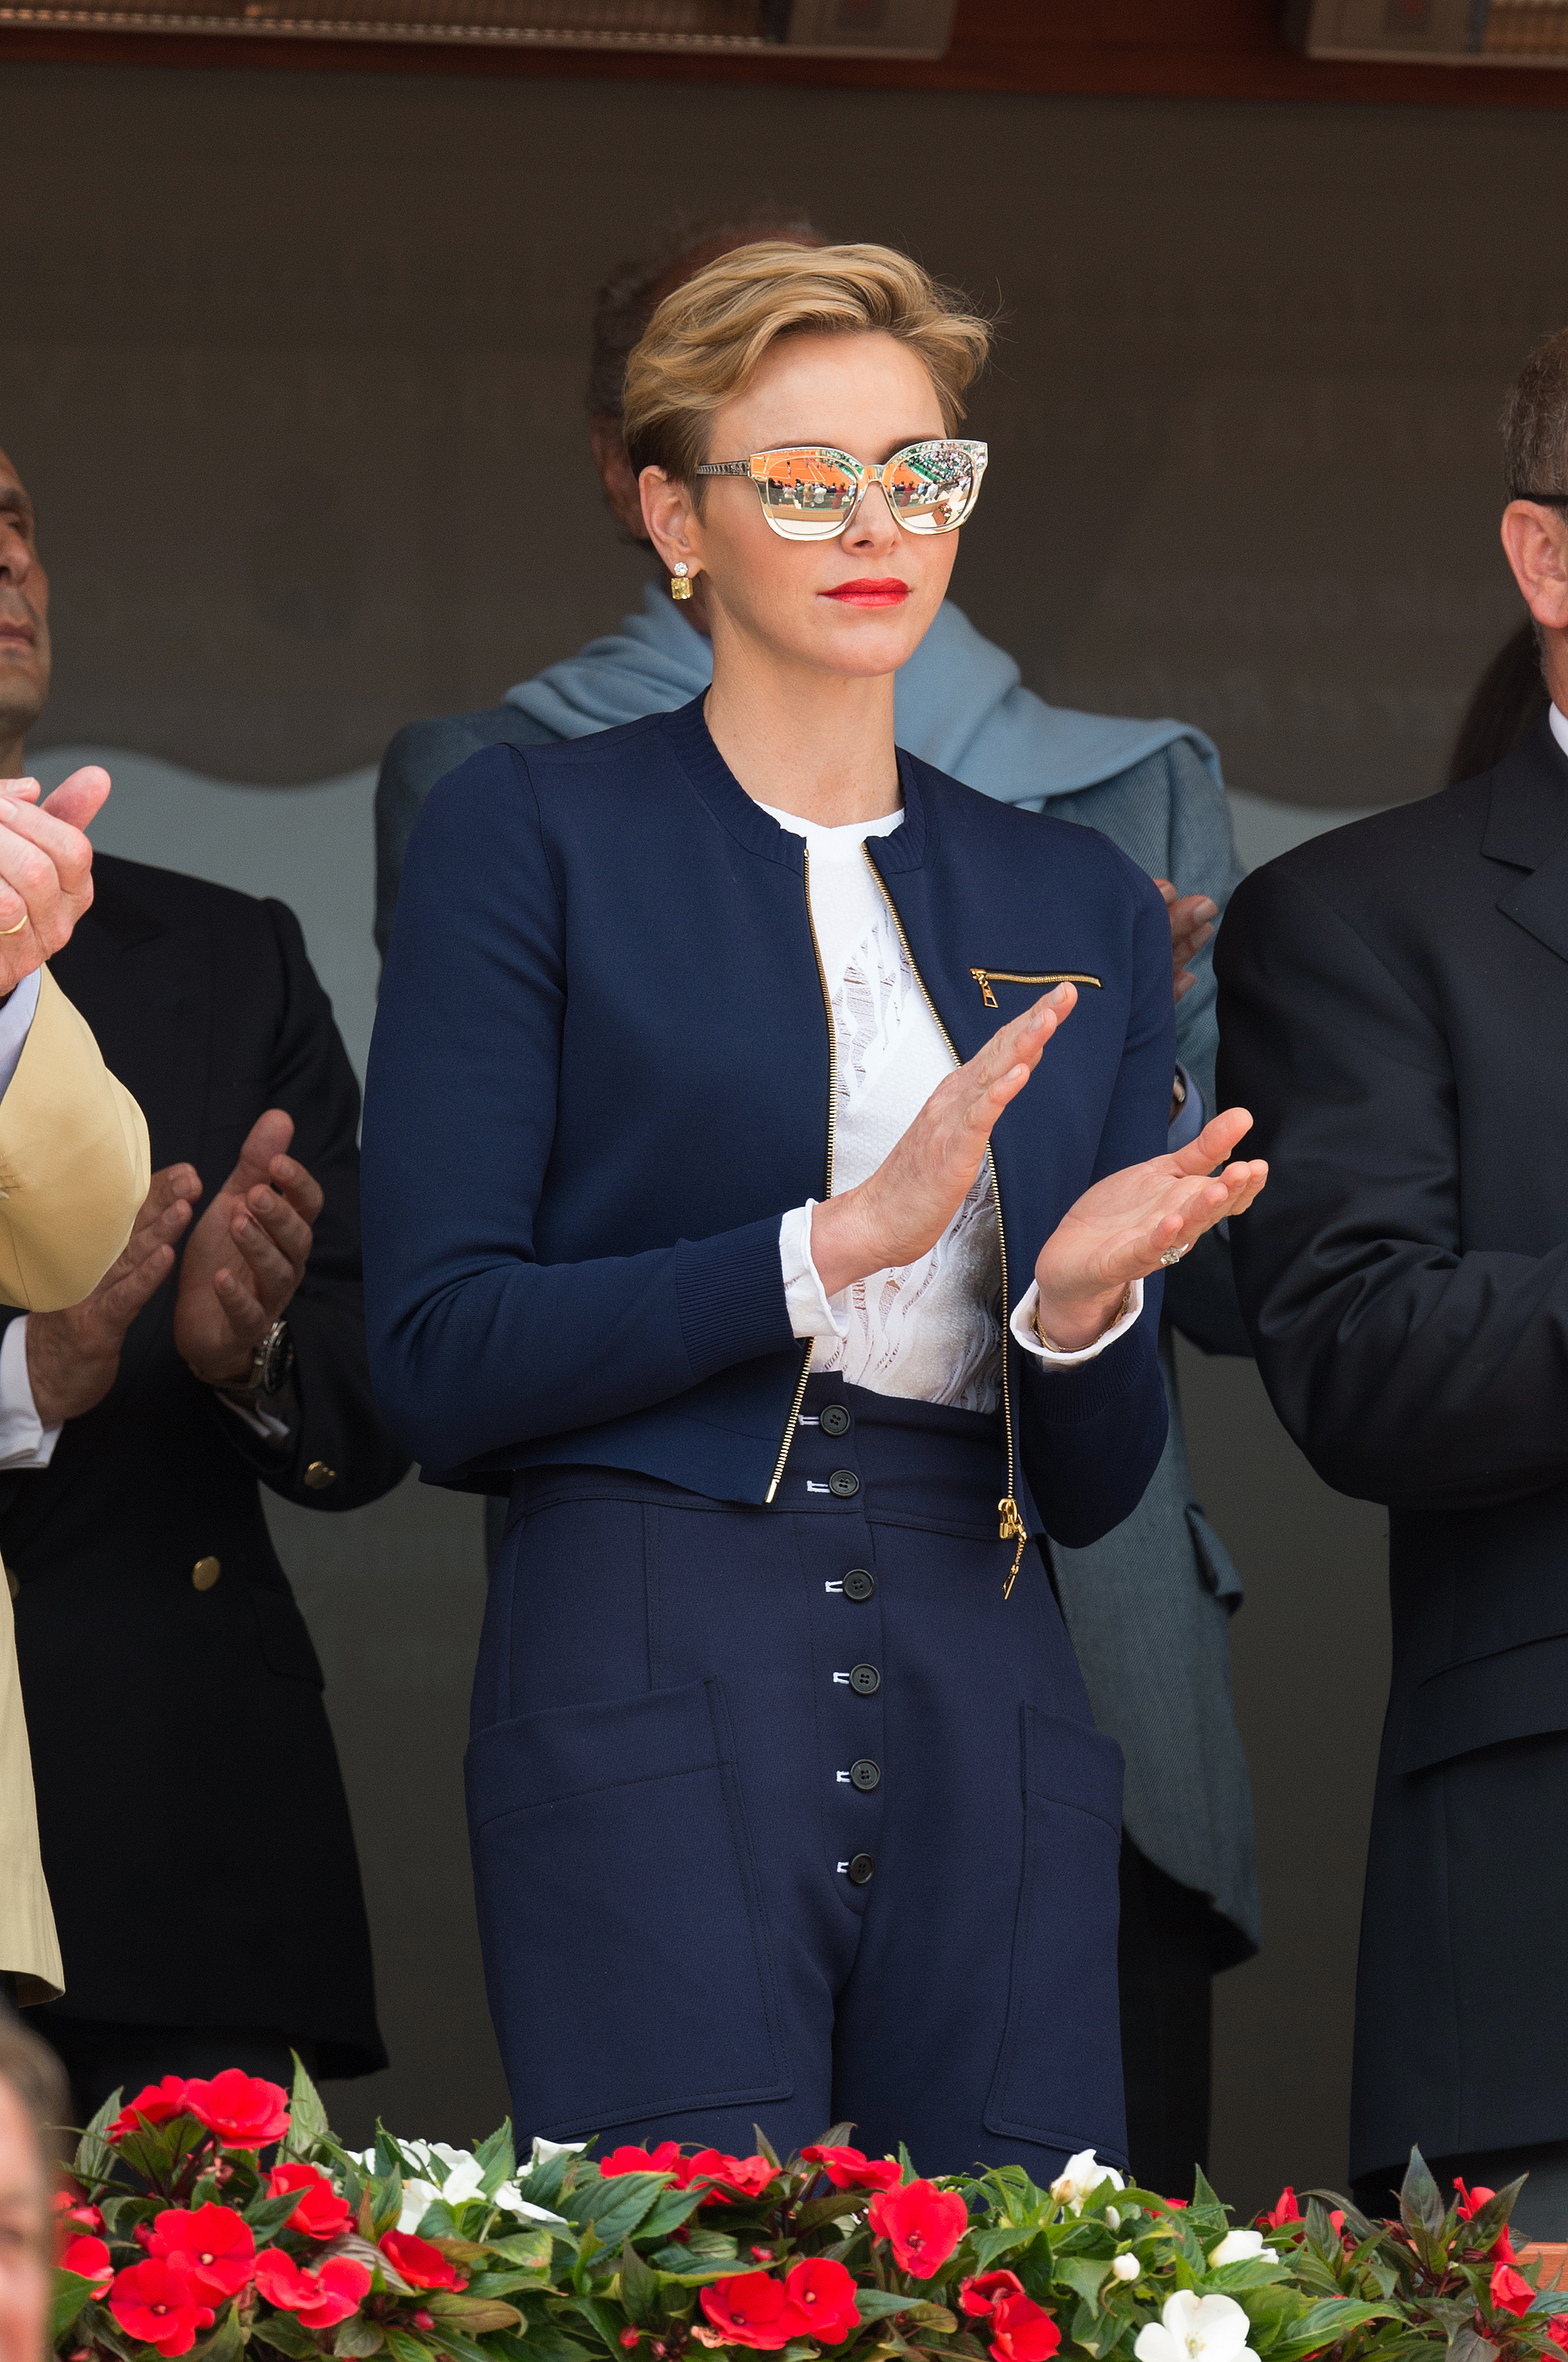 Princess Charlene of Monaco being a little on the nose with her choice of royal blue pantsuit.